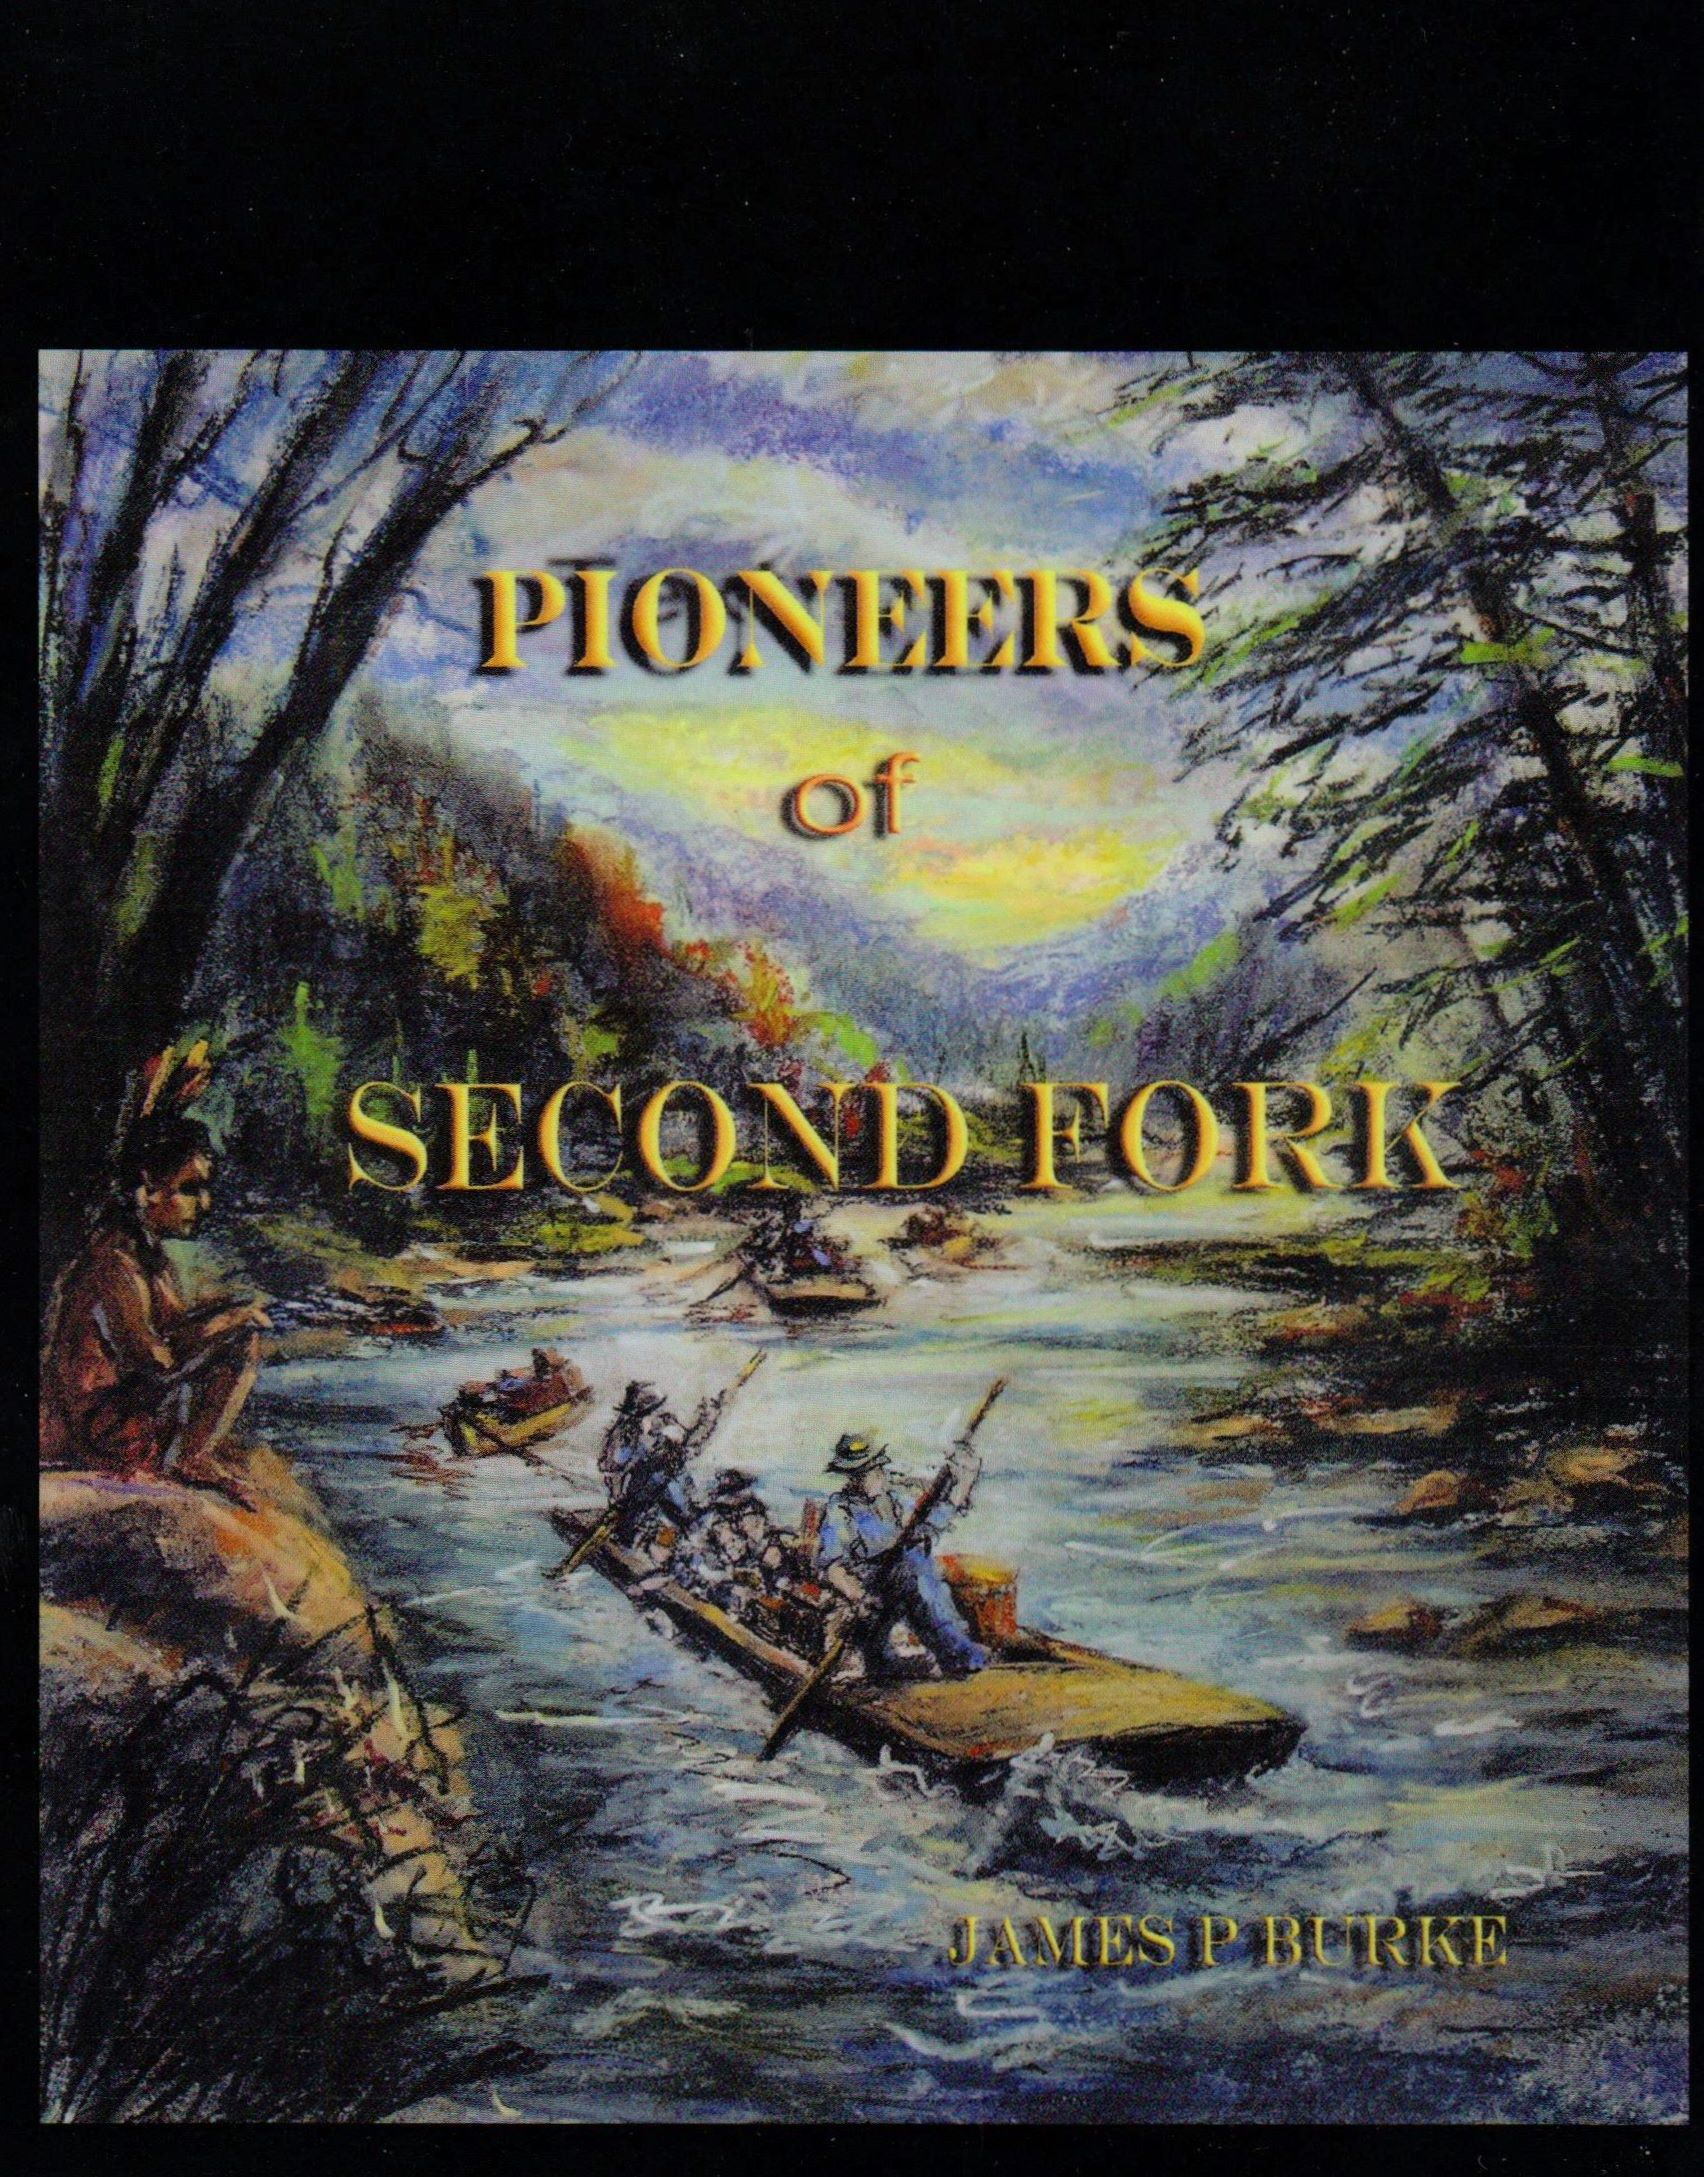 Pioneers of Second Fork